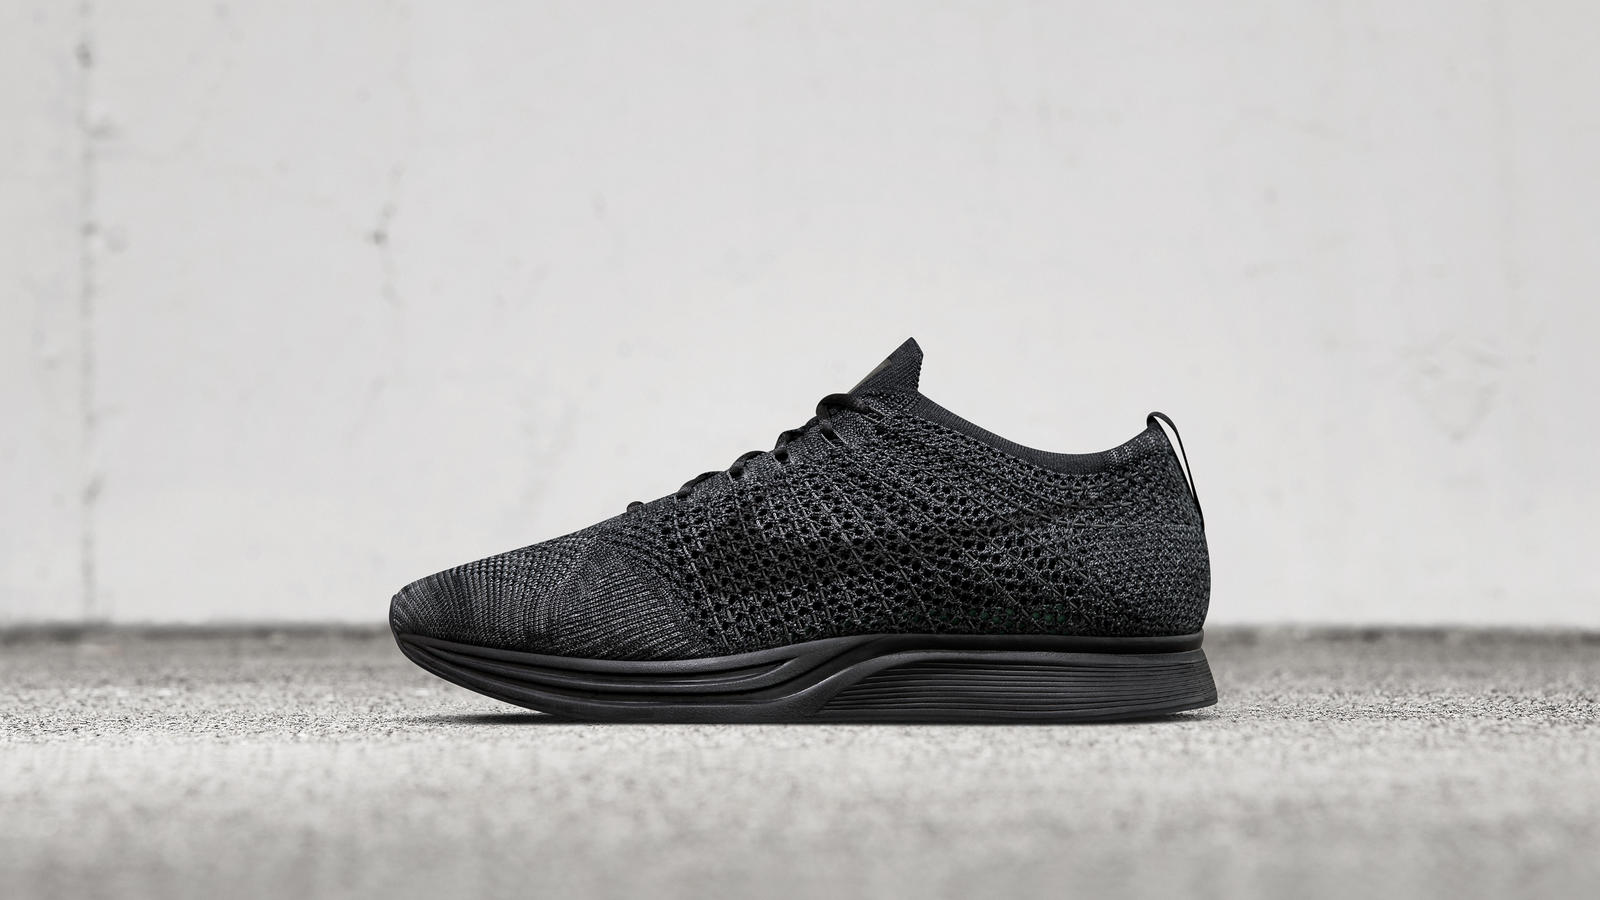 Discount Nike Flyknit Racer 2017 Black White-White Running Shoe For Sale